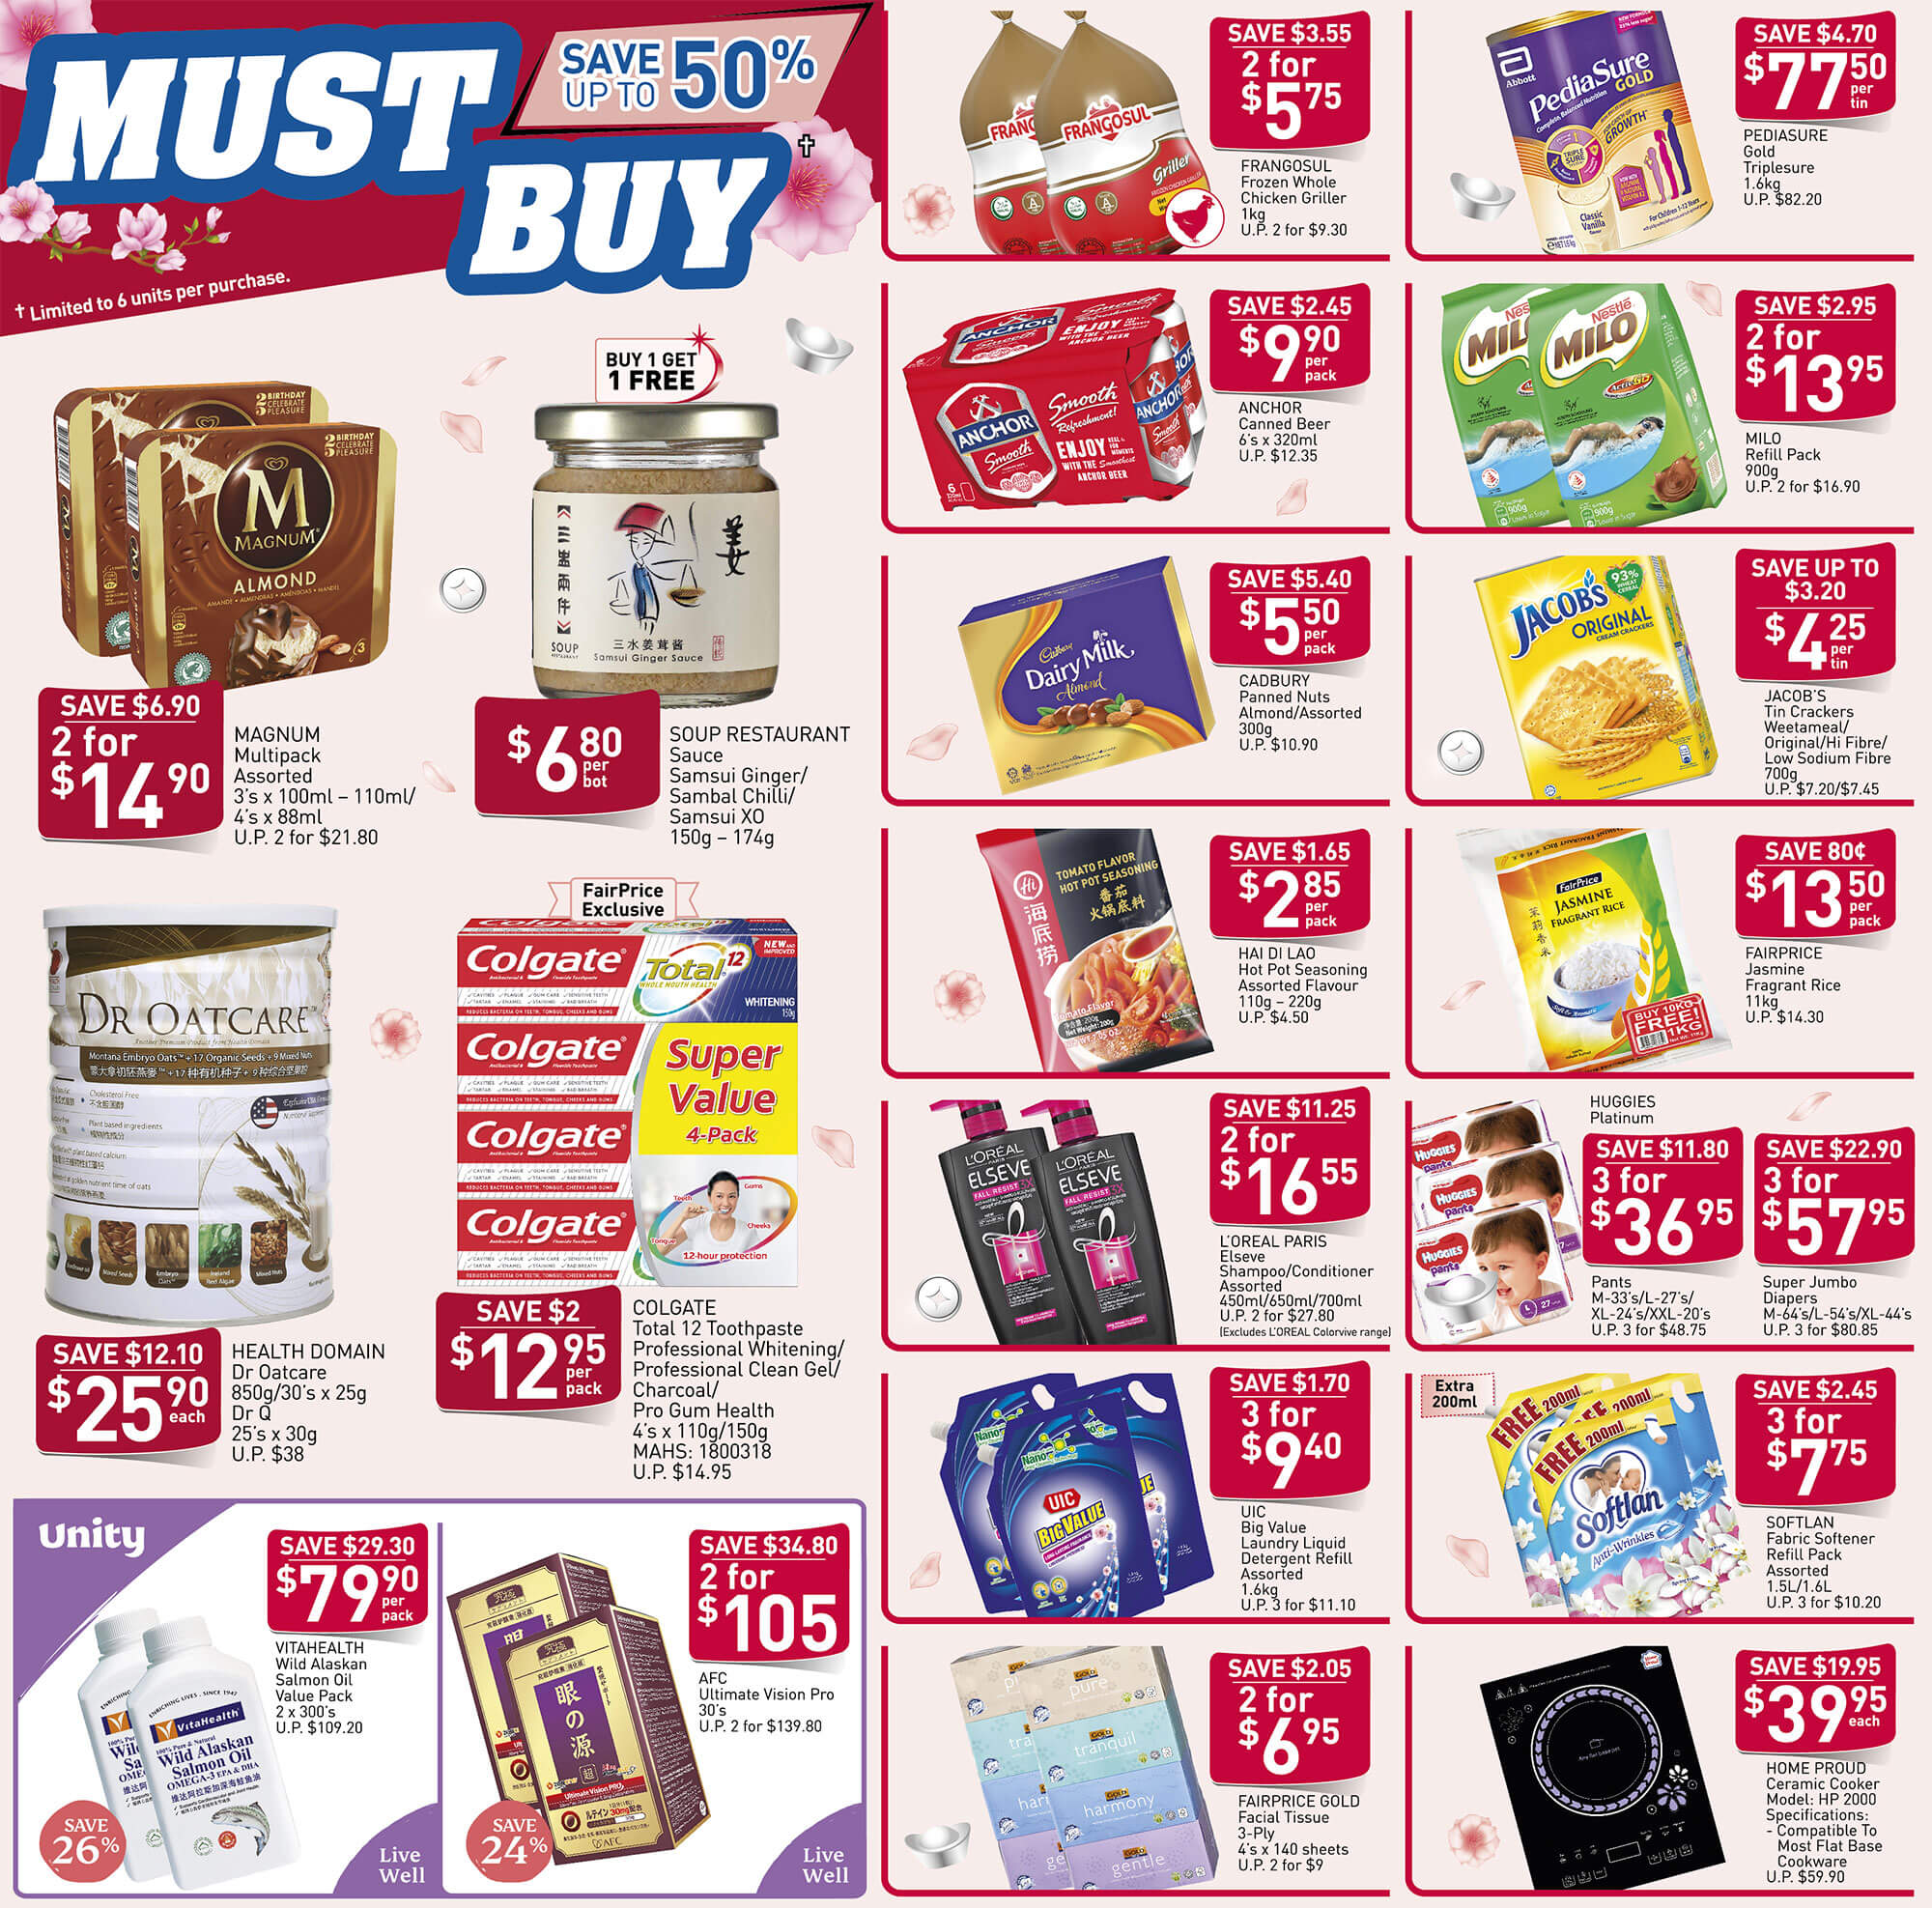 NTUC FairPrice SG Your Weekly Saver Promotion 16-22 Jan 2020 | Why Not Deals 4 & Promotions